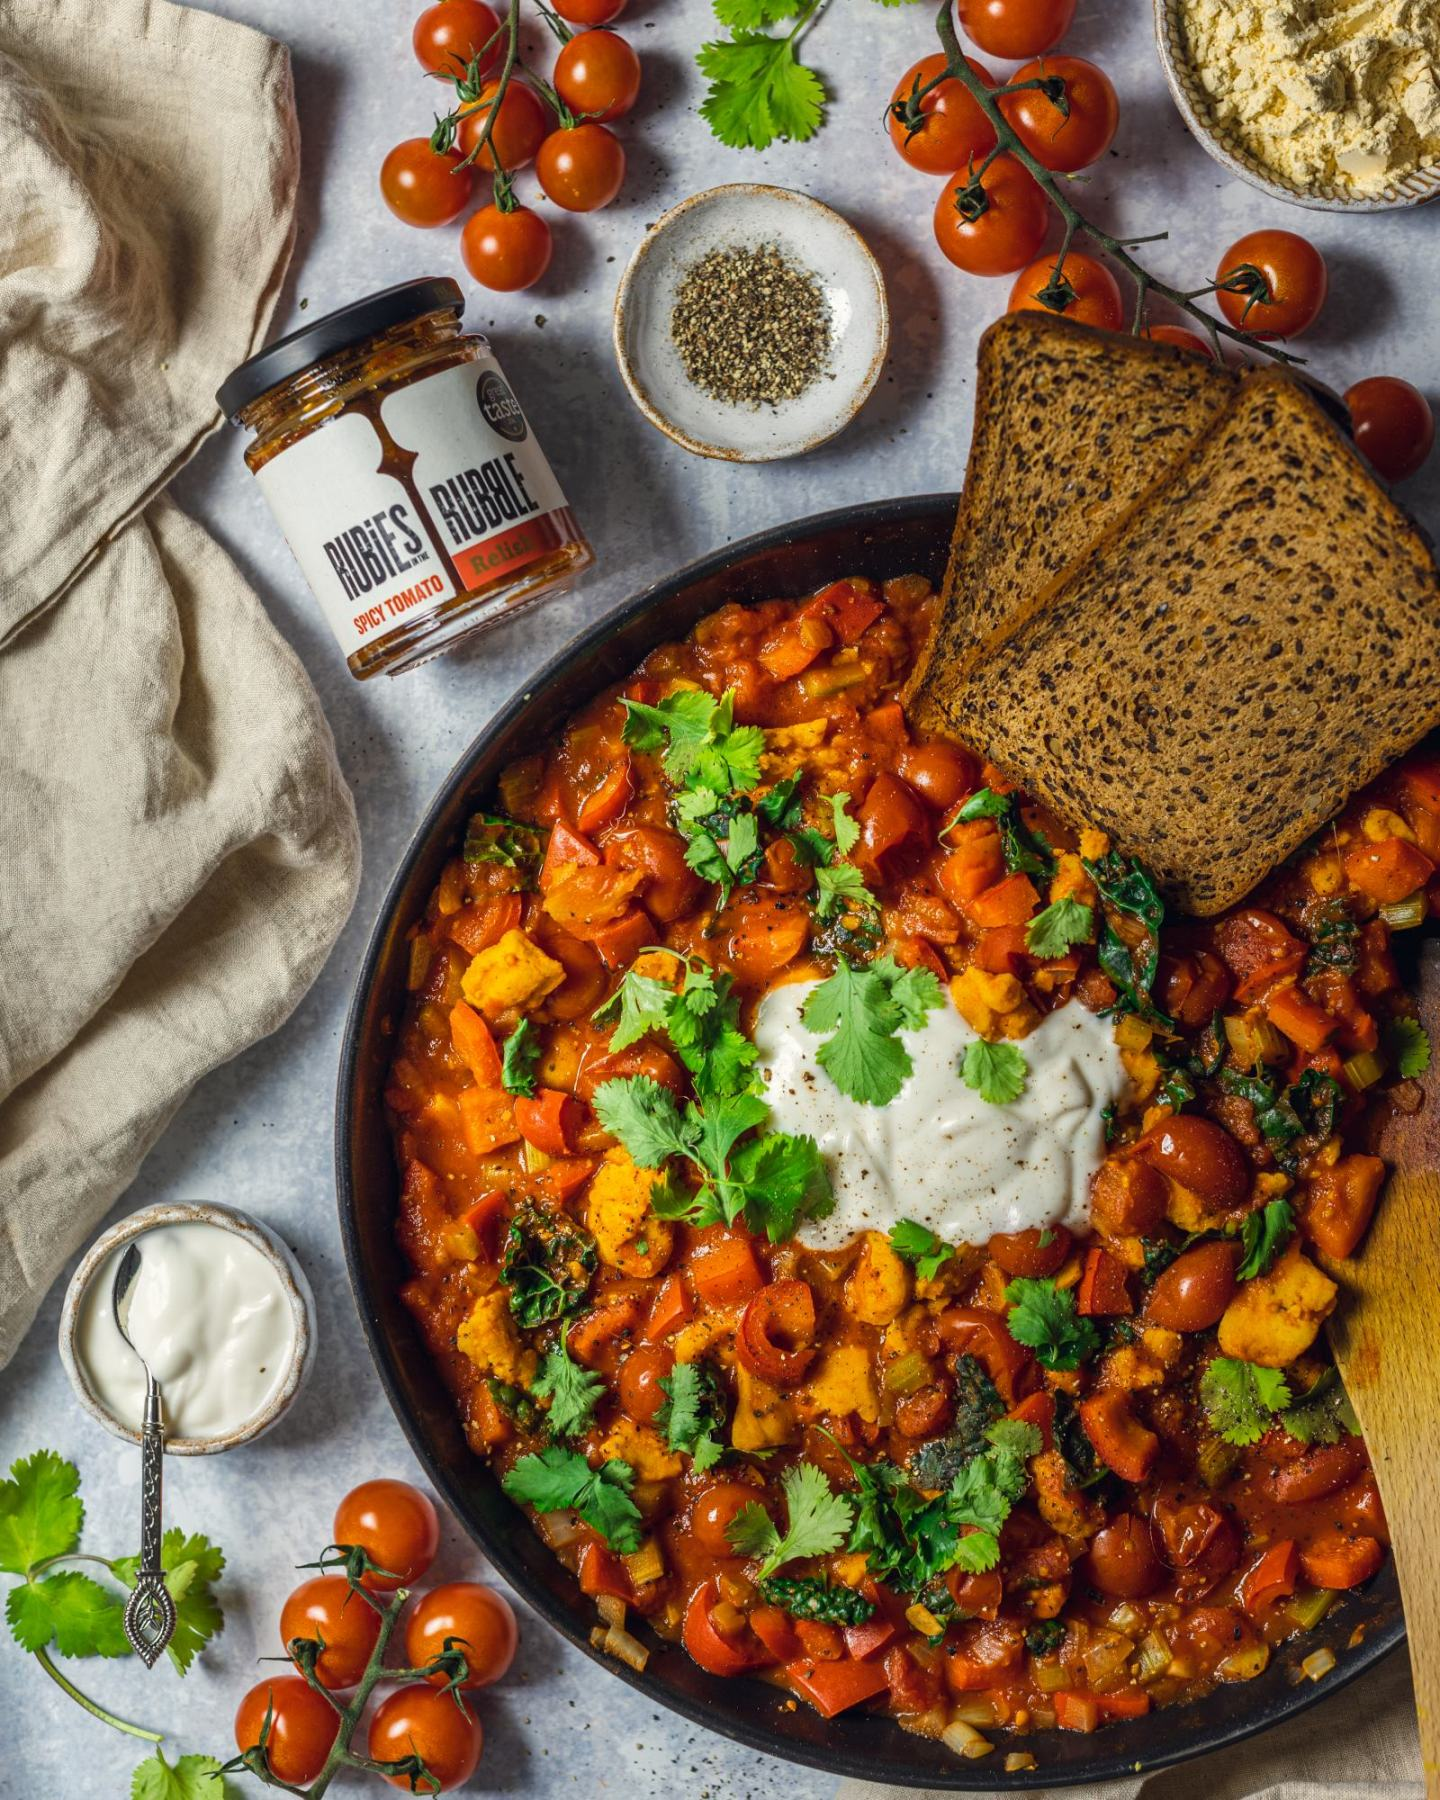 Easy Vegan Shakshuka (No Tofu)